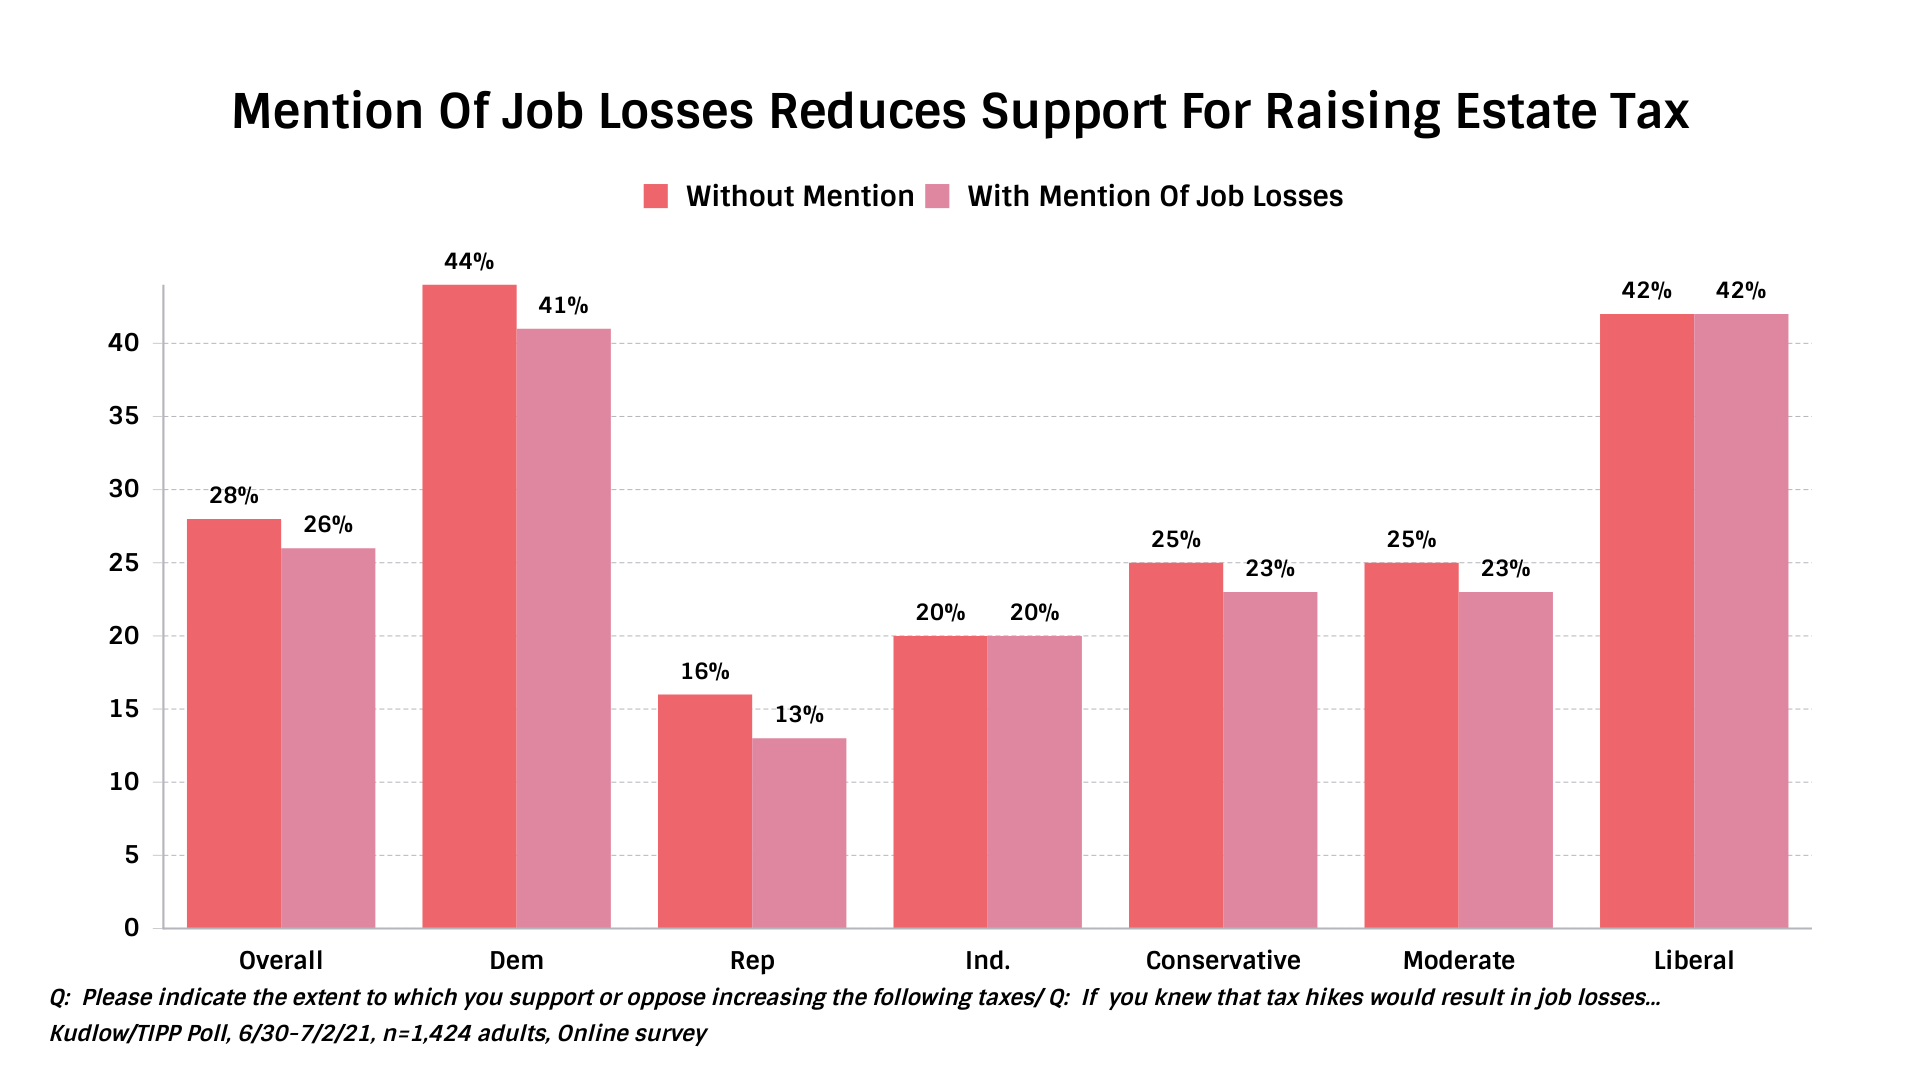 Mention Of Job Losses Reducing Support For Raising Estate Tax - By Ideology and Party